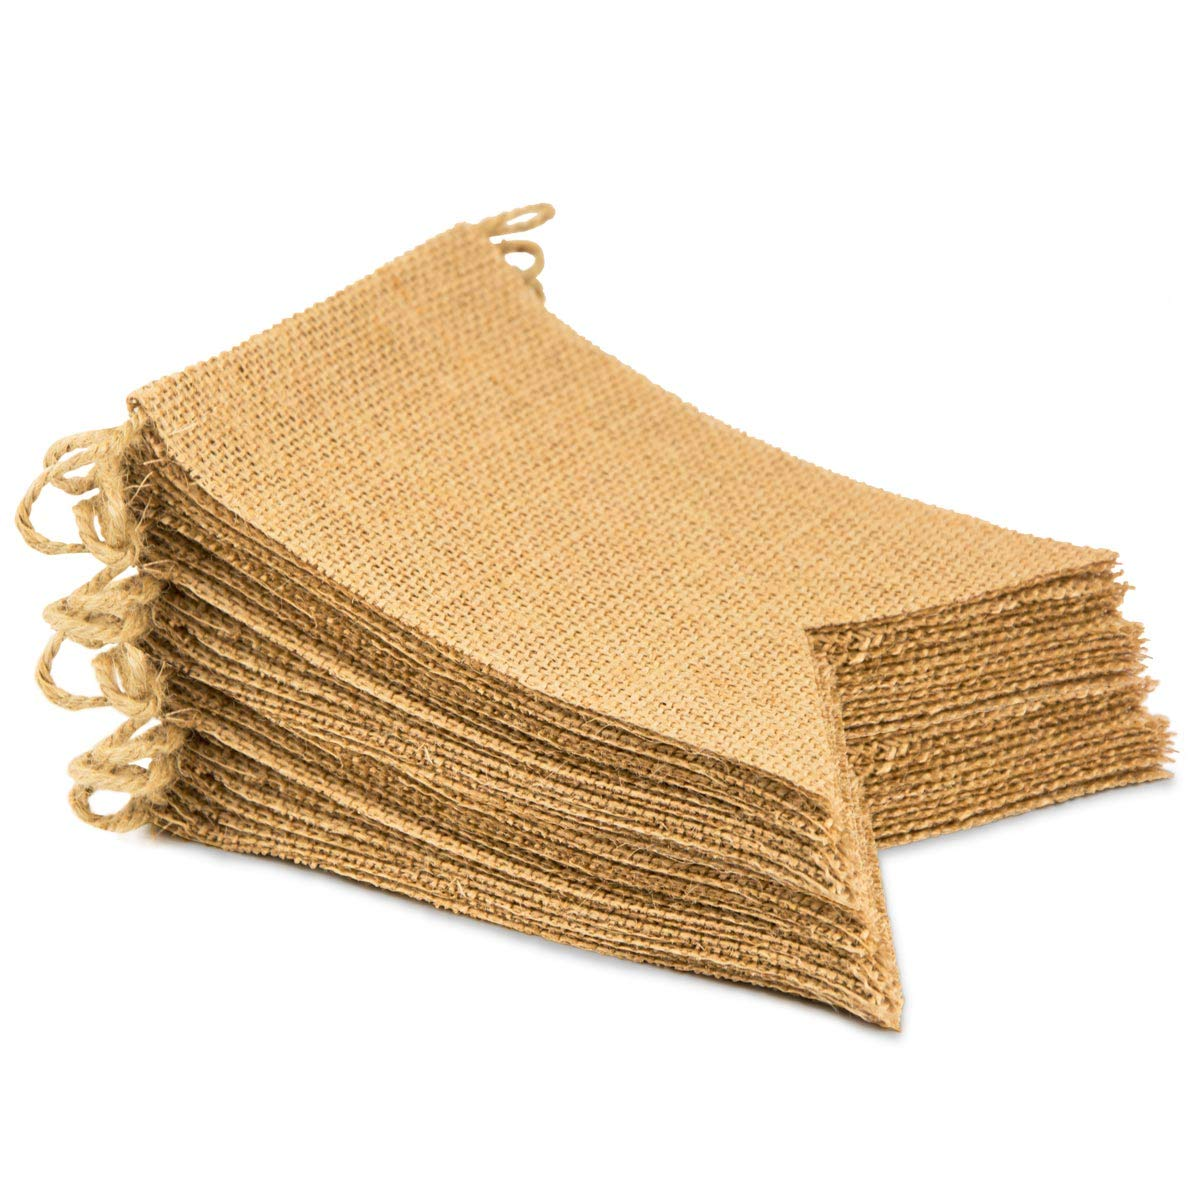 ThxToms (30 Pcs) Burlap Banner, DIY Party Decor for Birthday, Wedding, Baby Shower and Graduation, 29ft